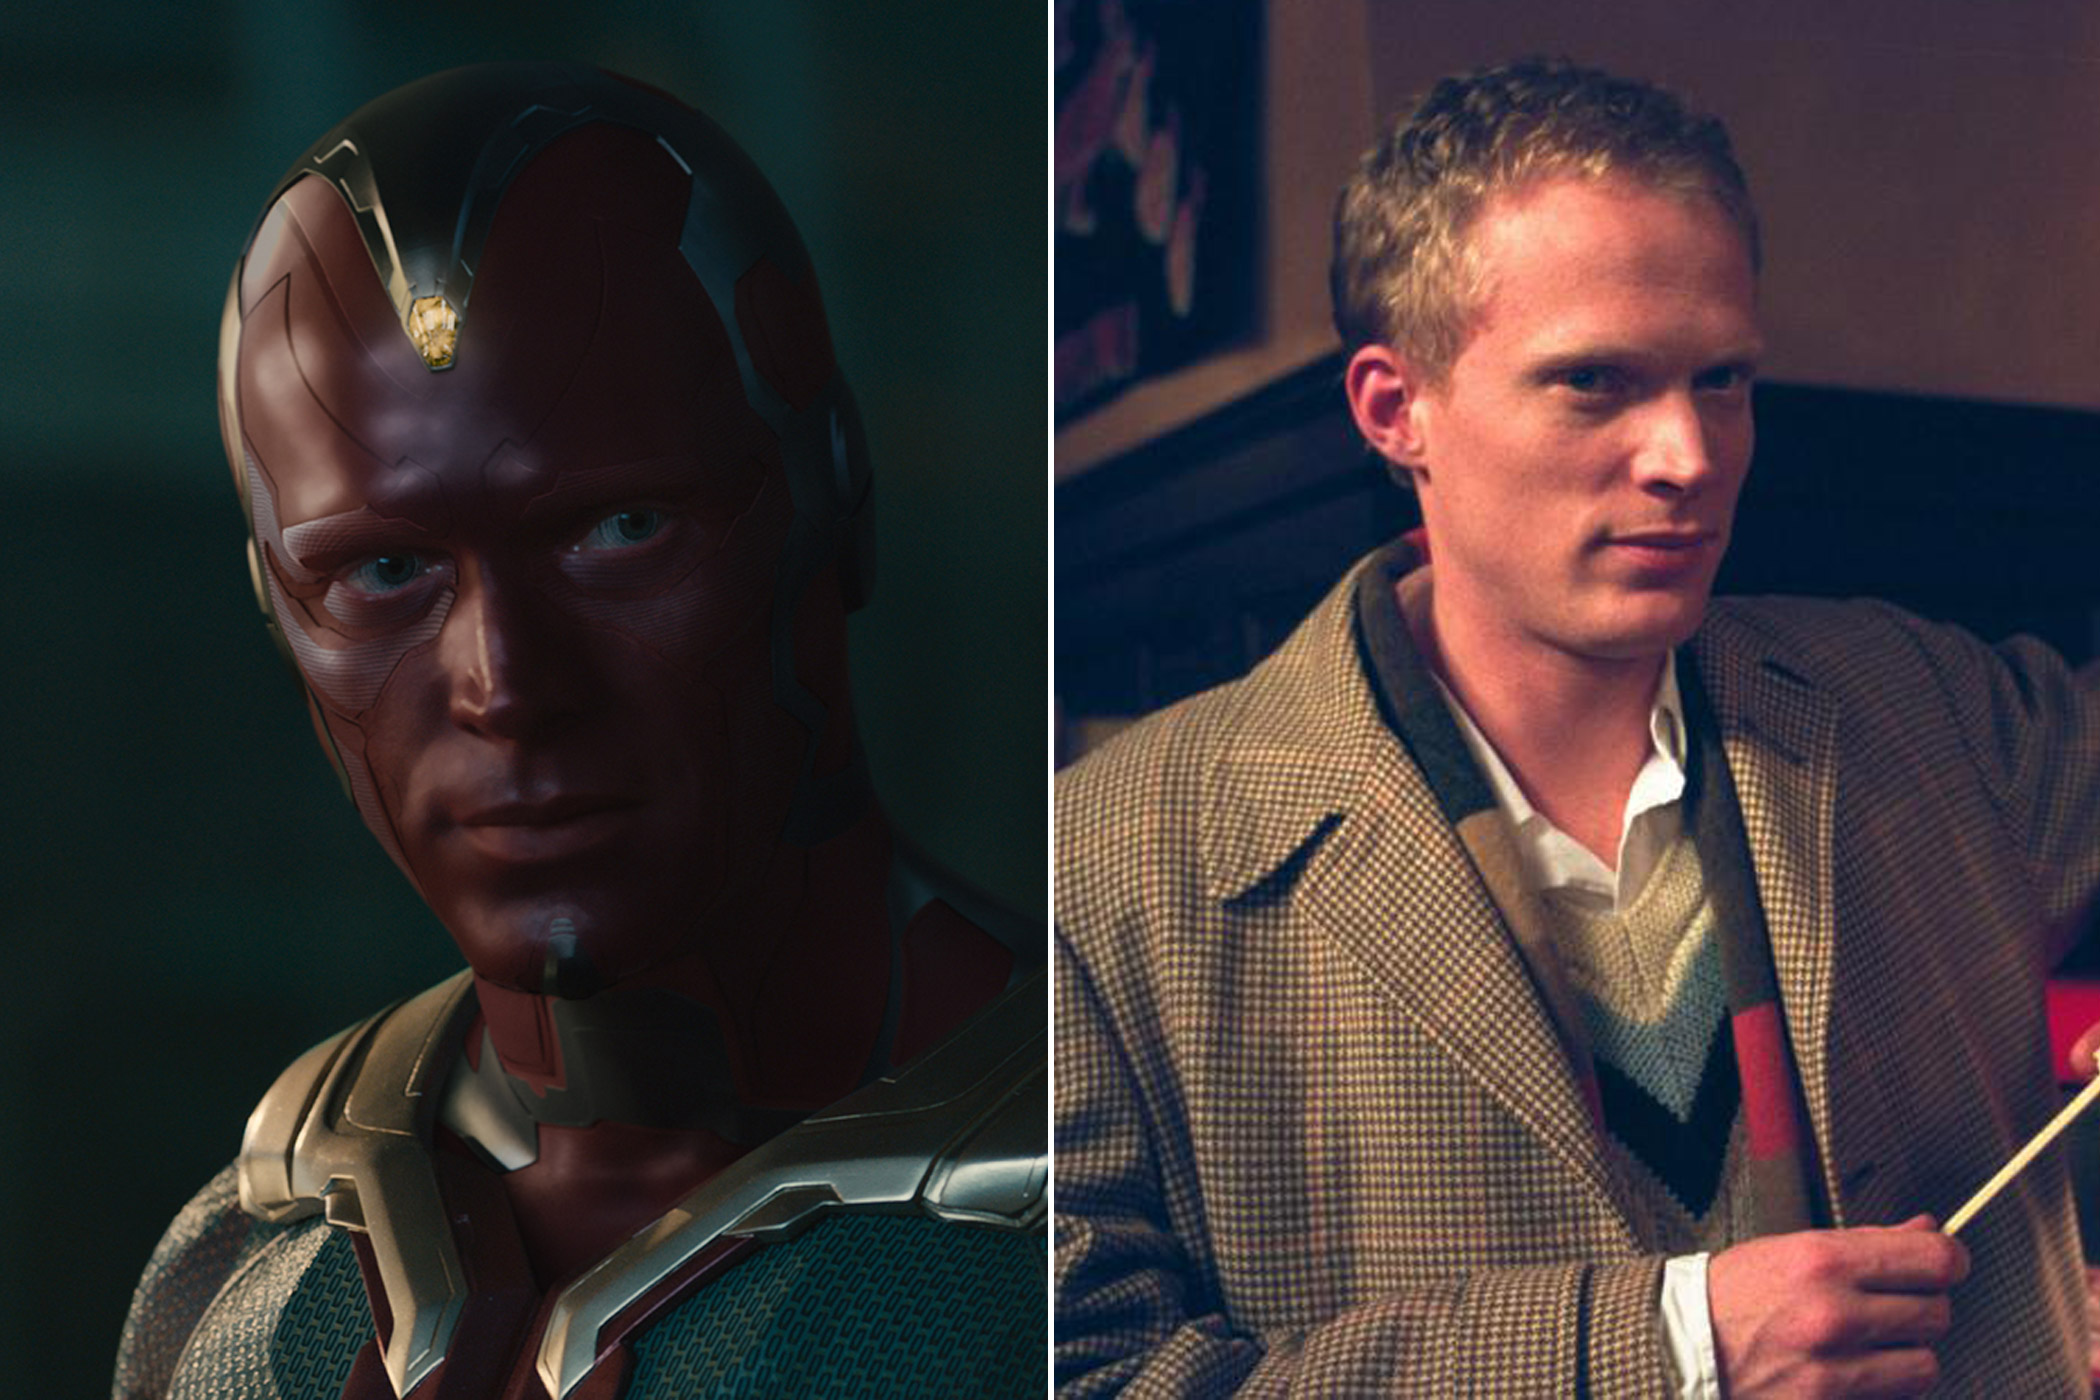 Paul Bettany as Vision in <i>The Avengers: Age of Ultron</i> and Charles Herman in <i>A Beautiful Mind</i>